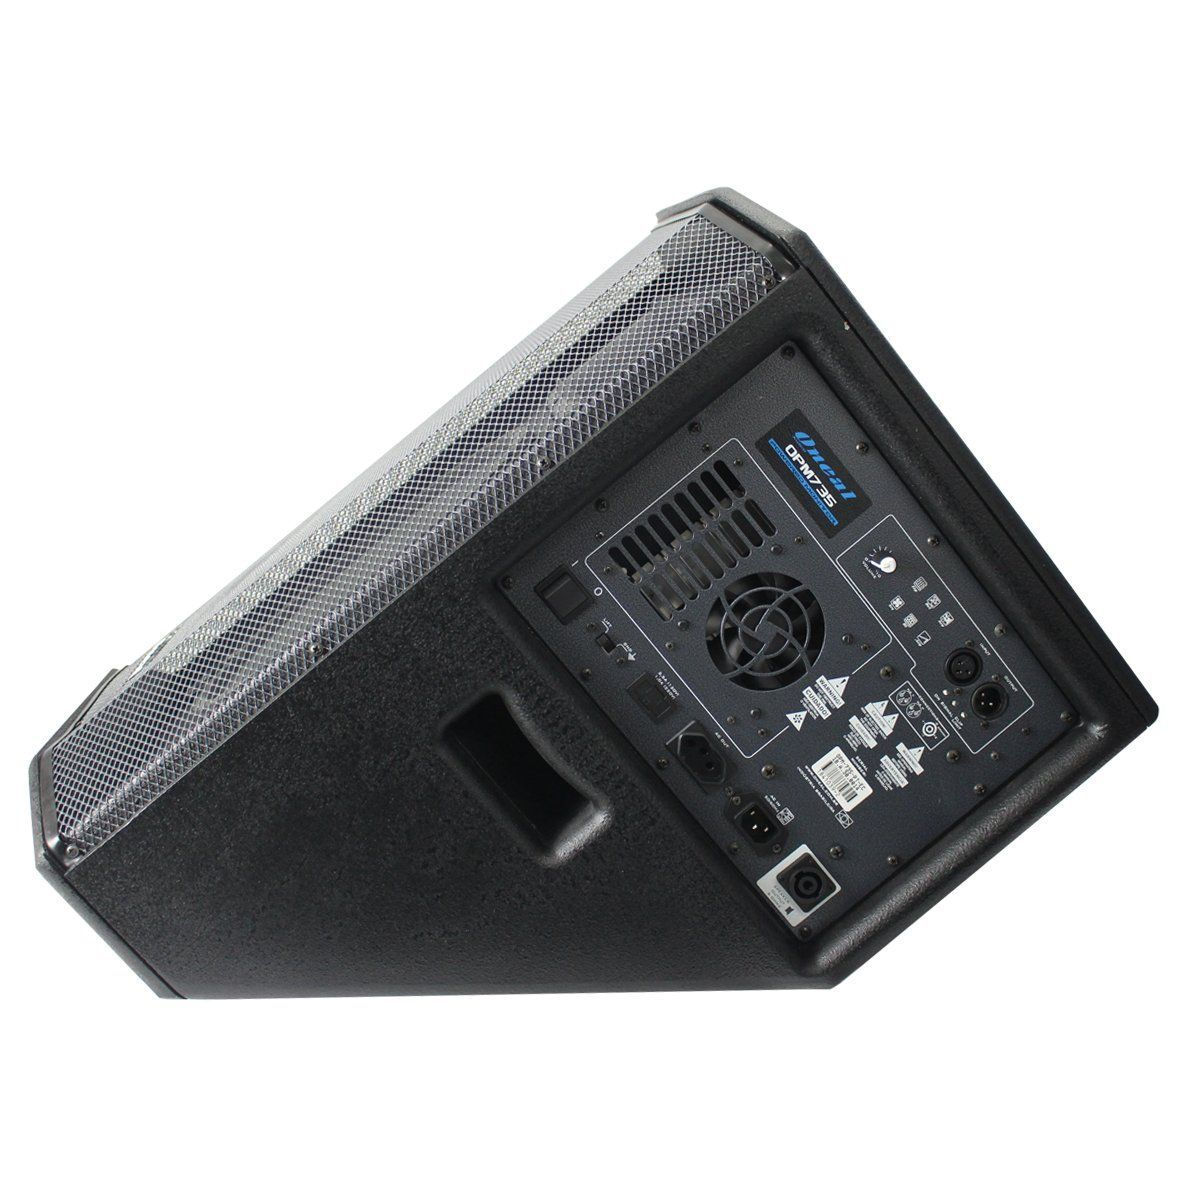 MONITOR ATIVO 200W RMS PTO OPM-735 ONEAL